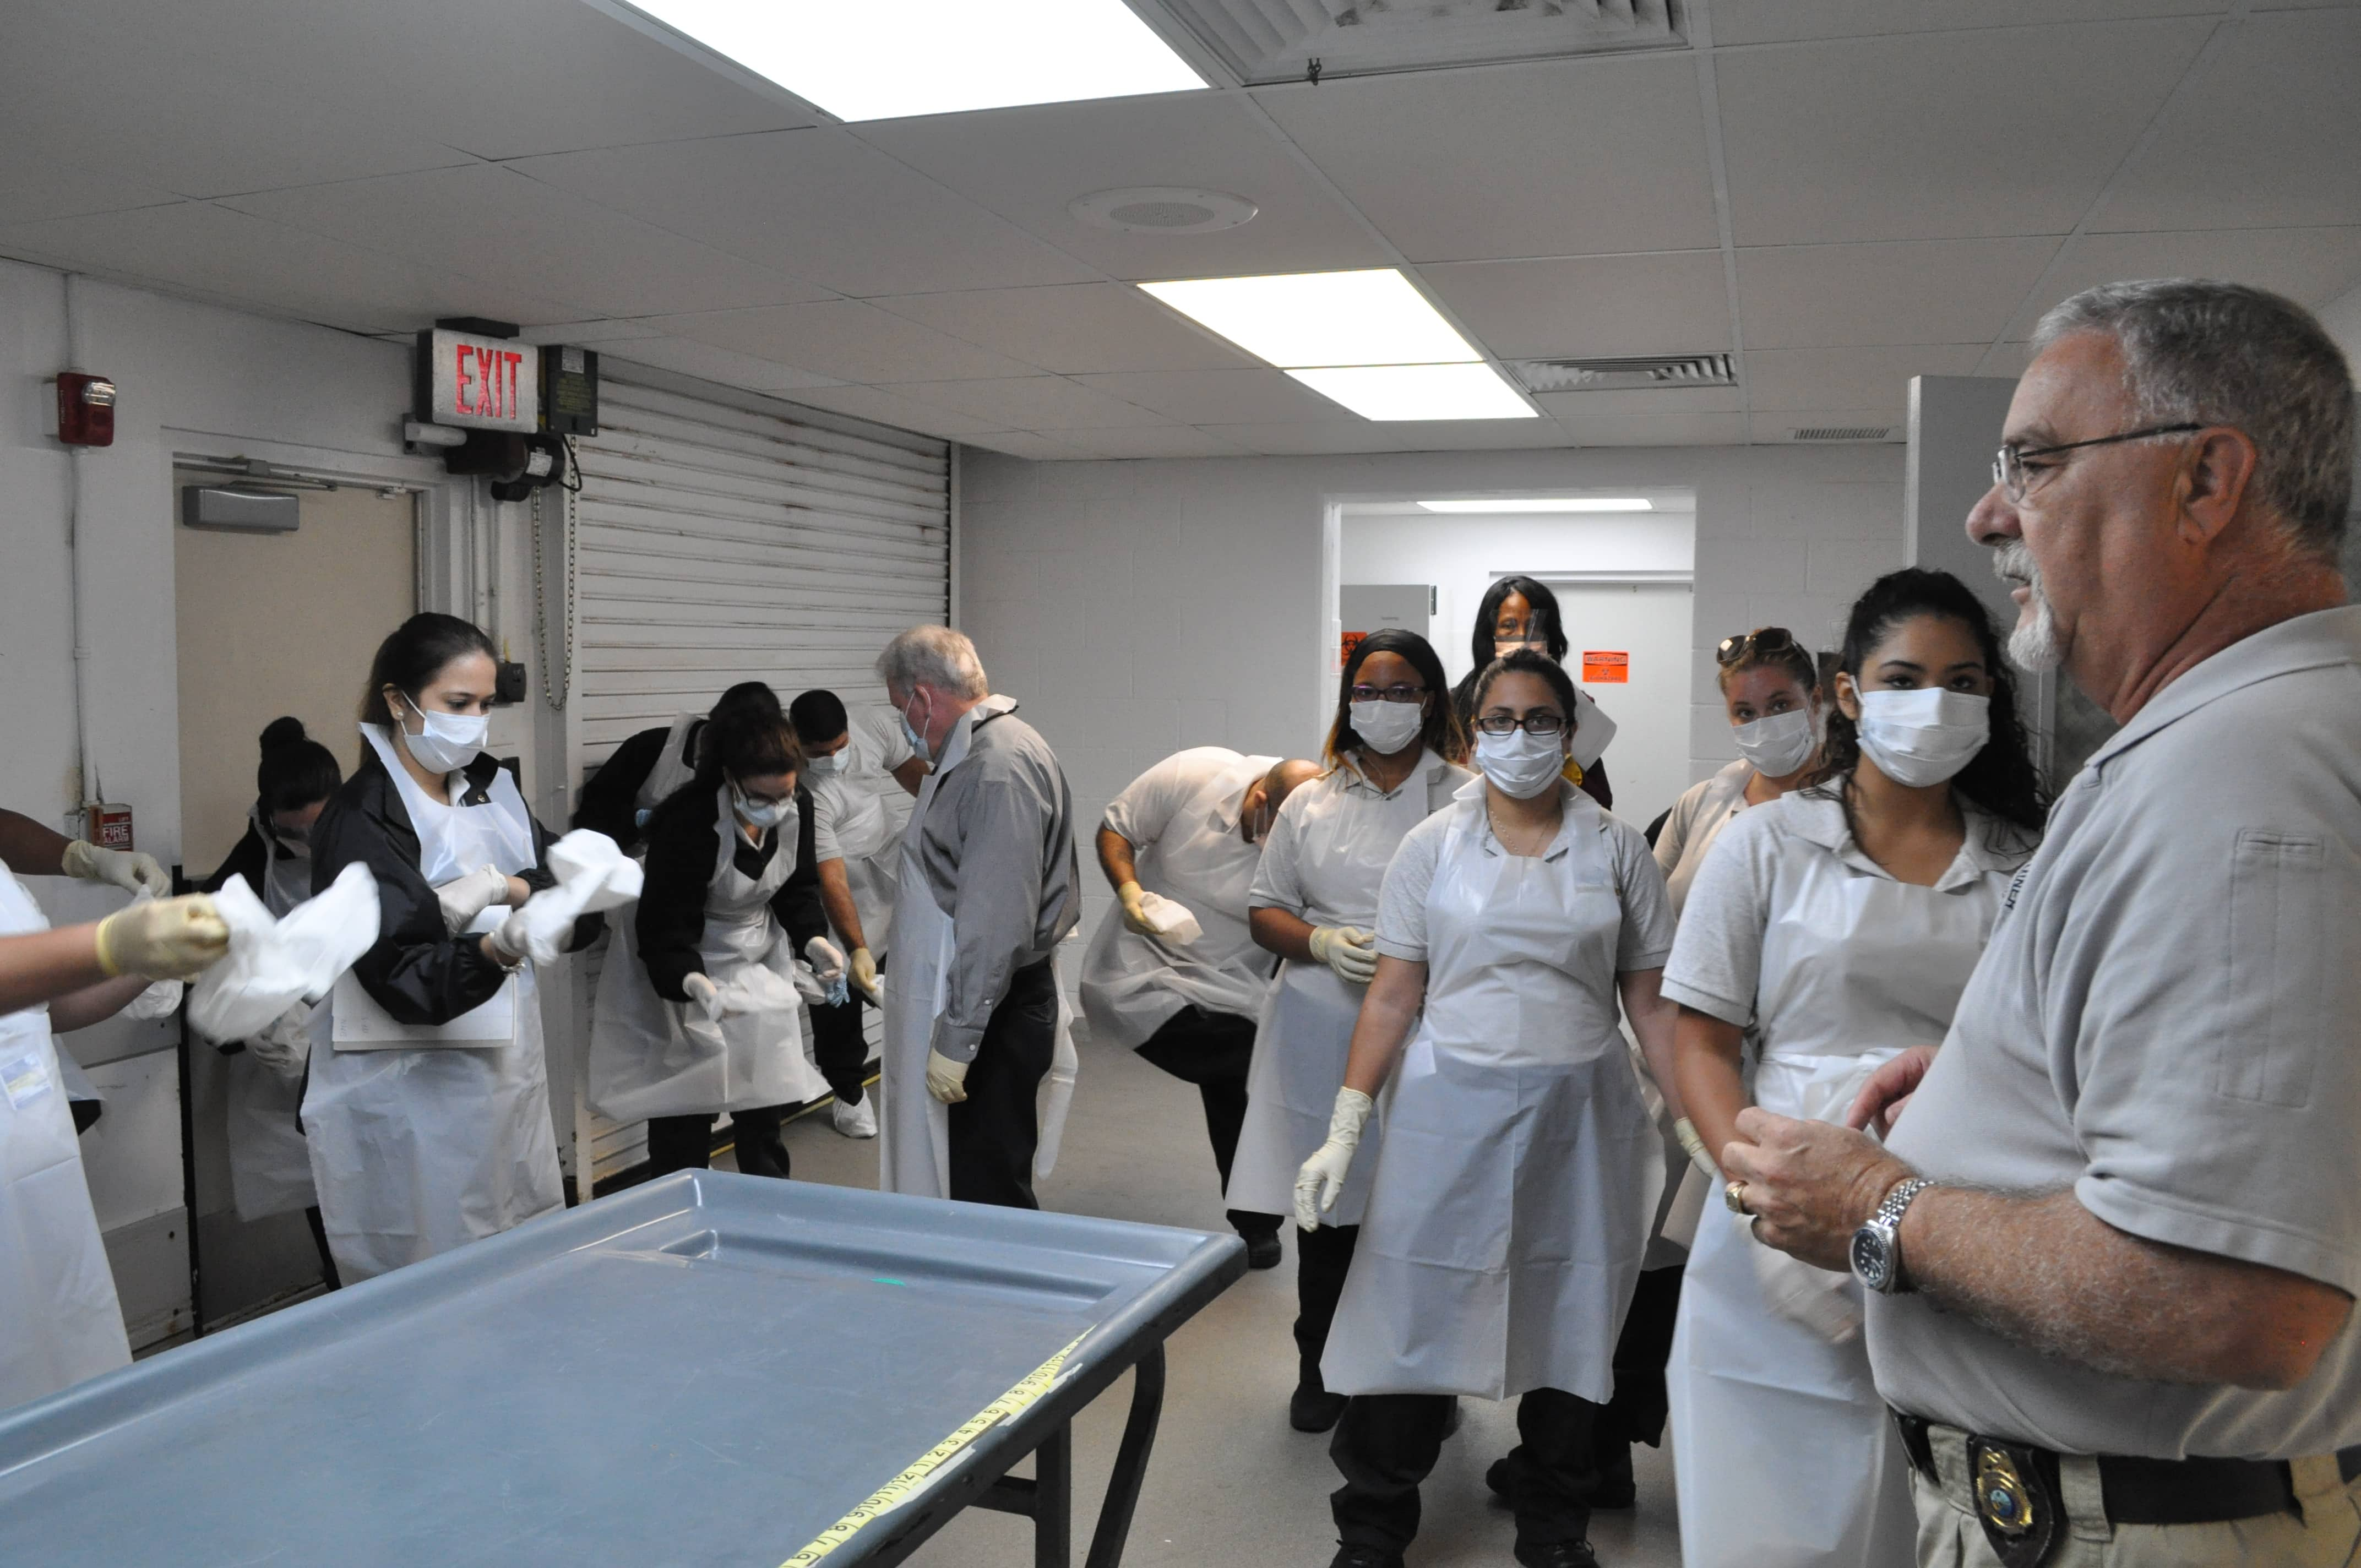 Crime Scene Technology Students from West Palm Beach, Miami and Pembroke Pines Tour the Palm Beach County Medical Examiner's Office